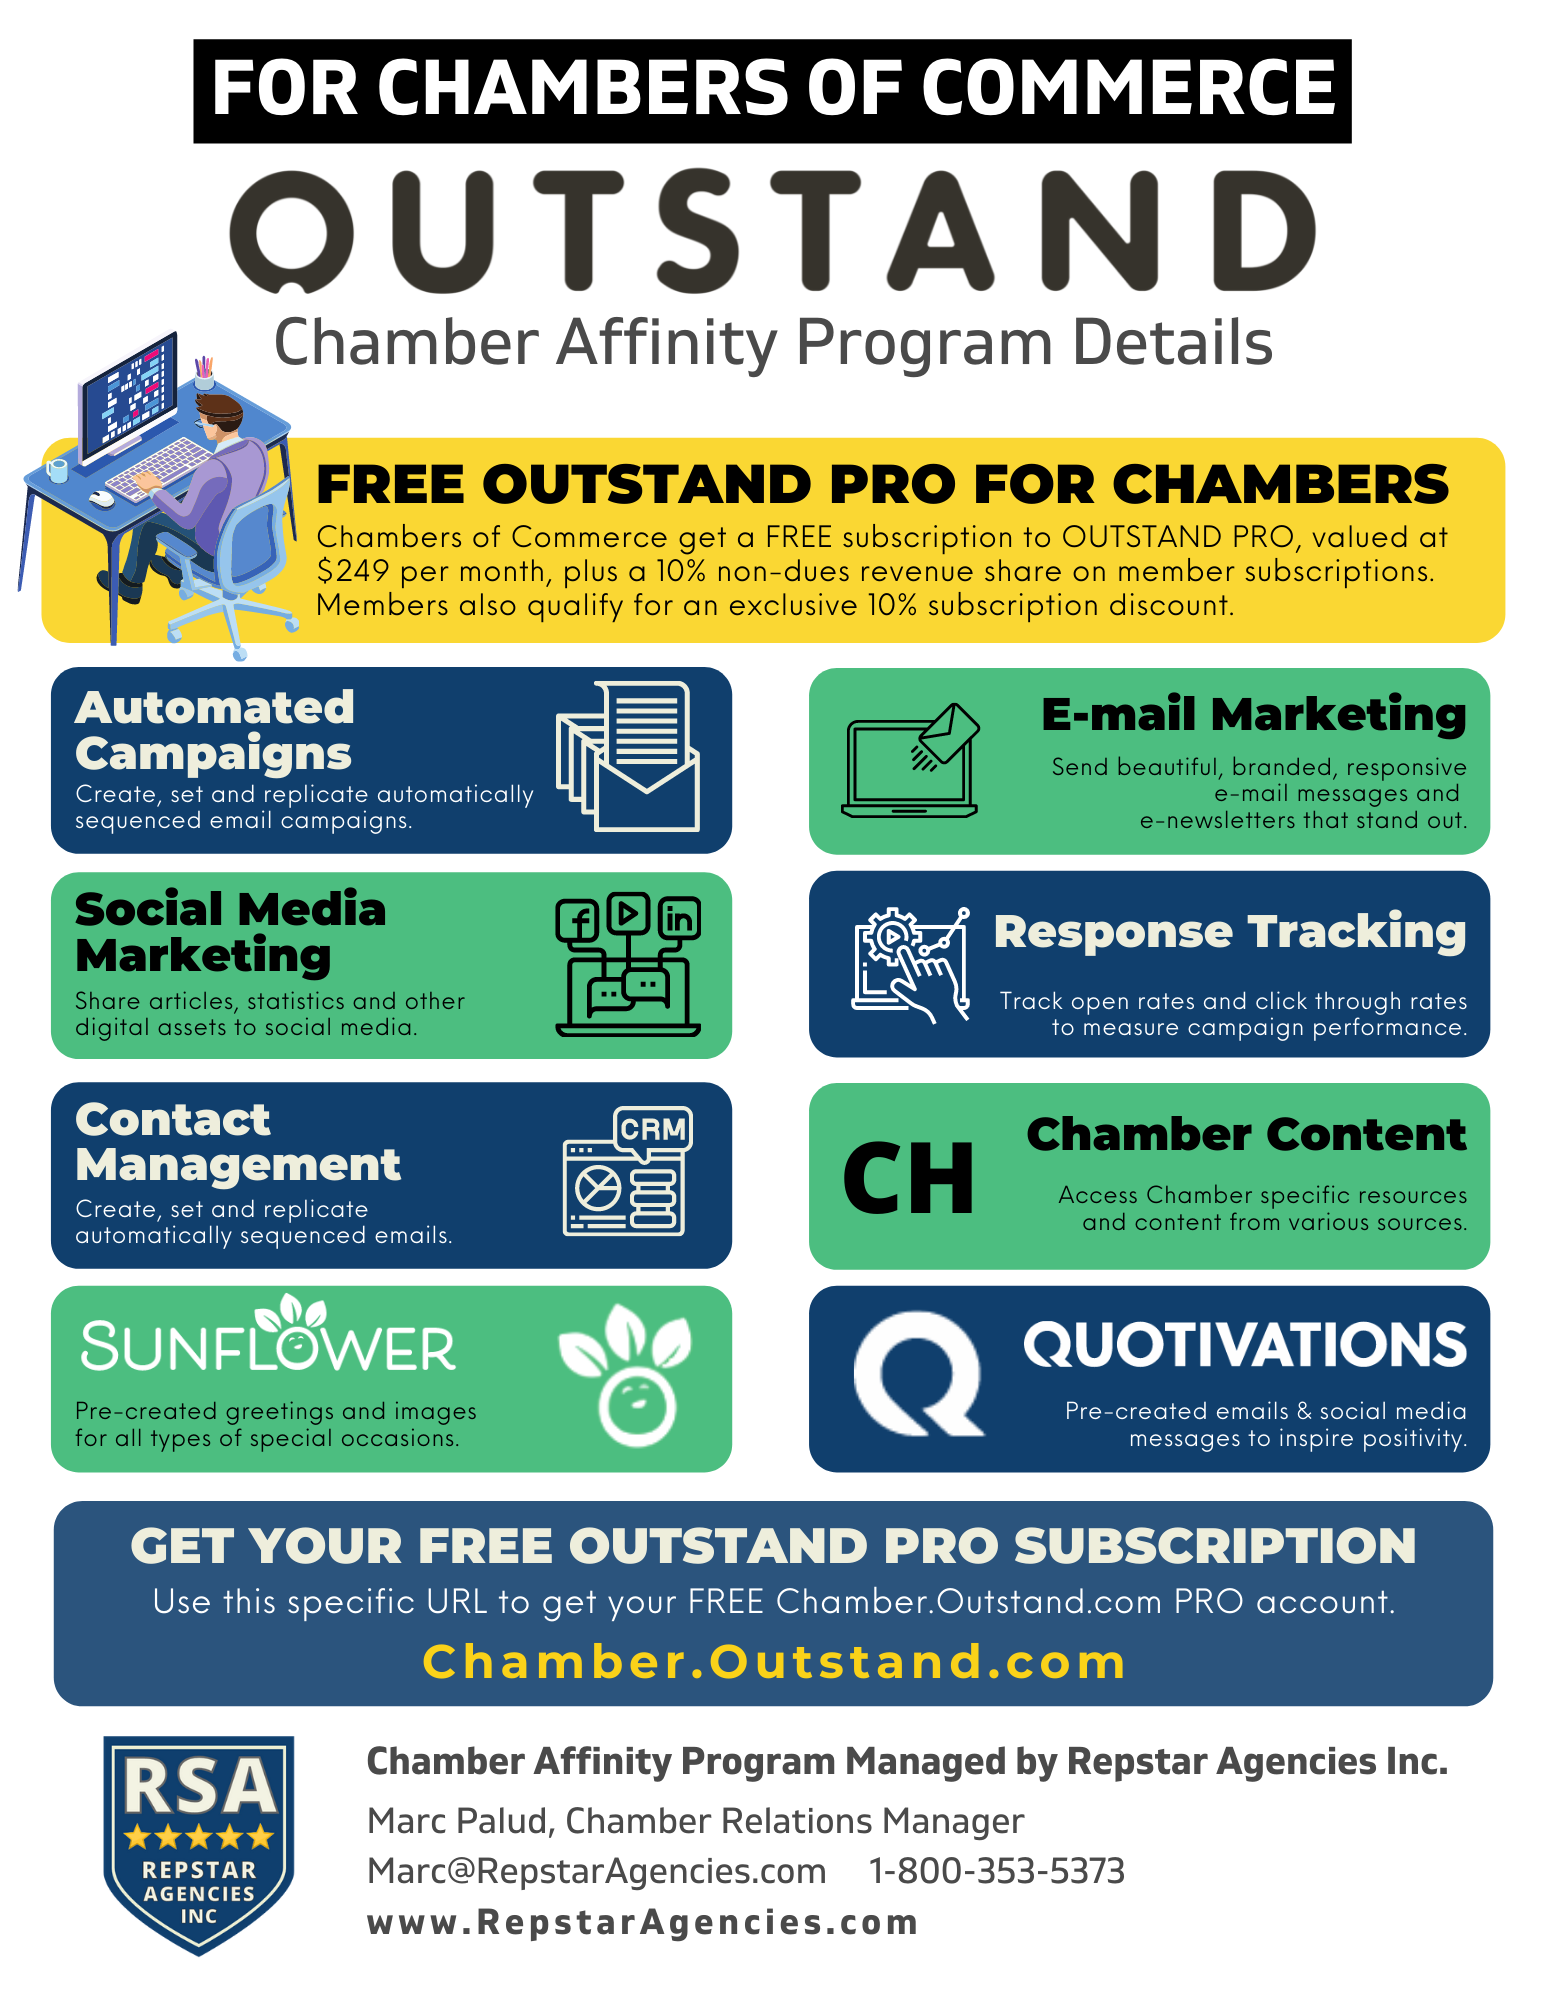 Chamber Affinity Program for Outstand